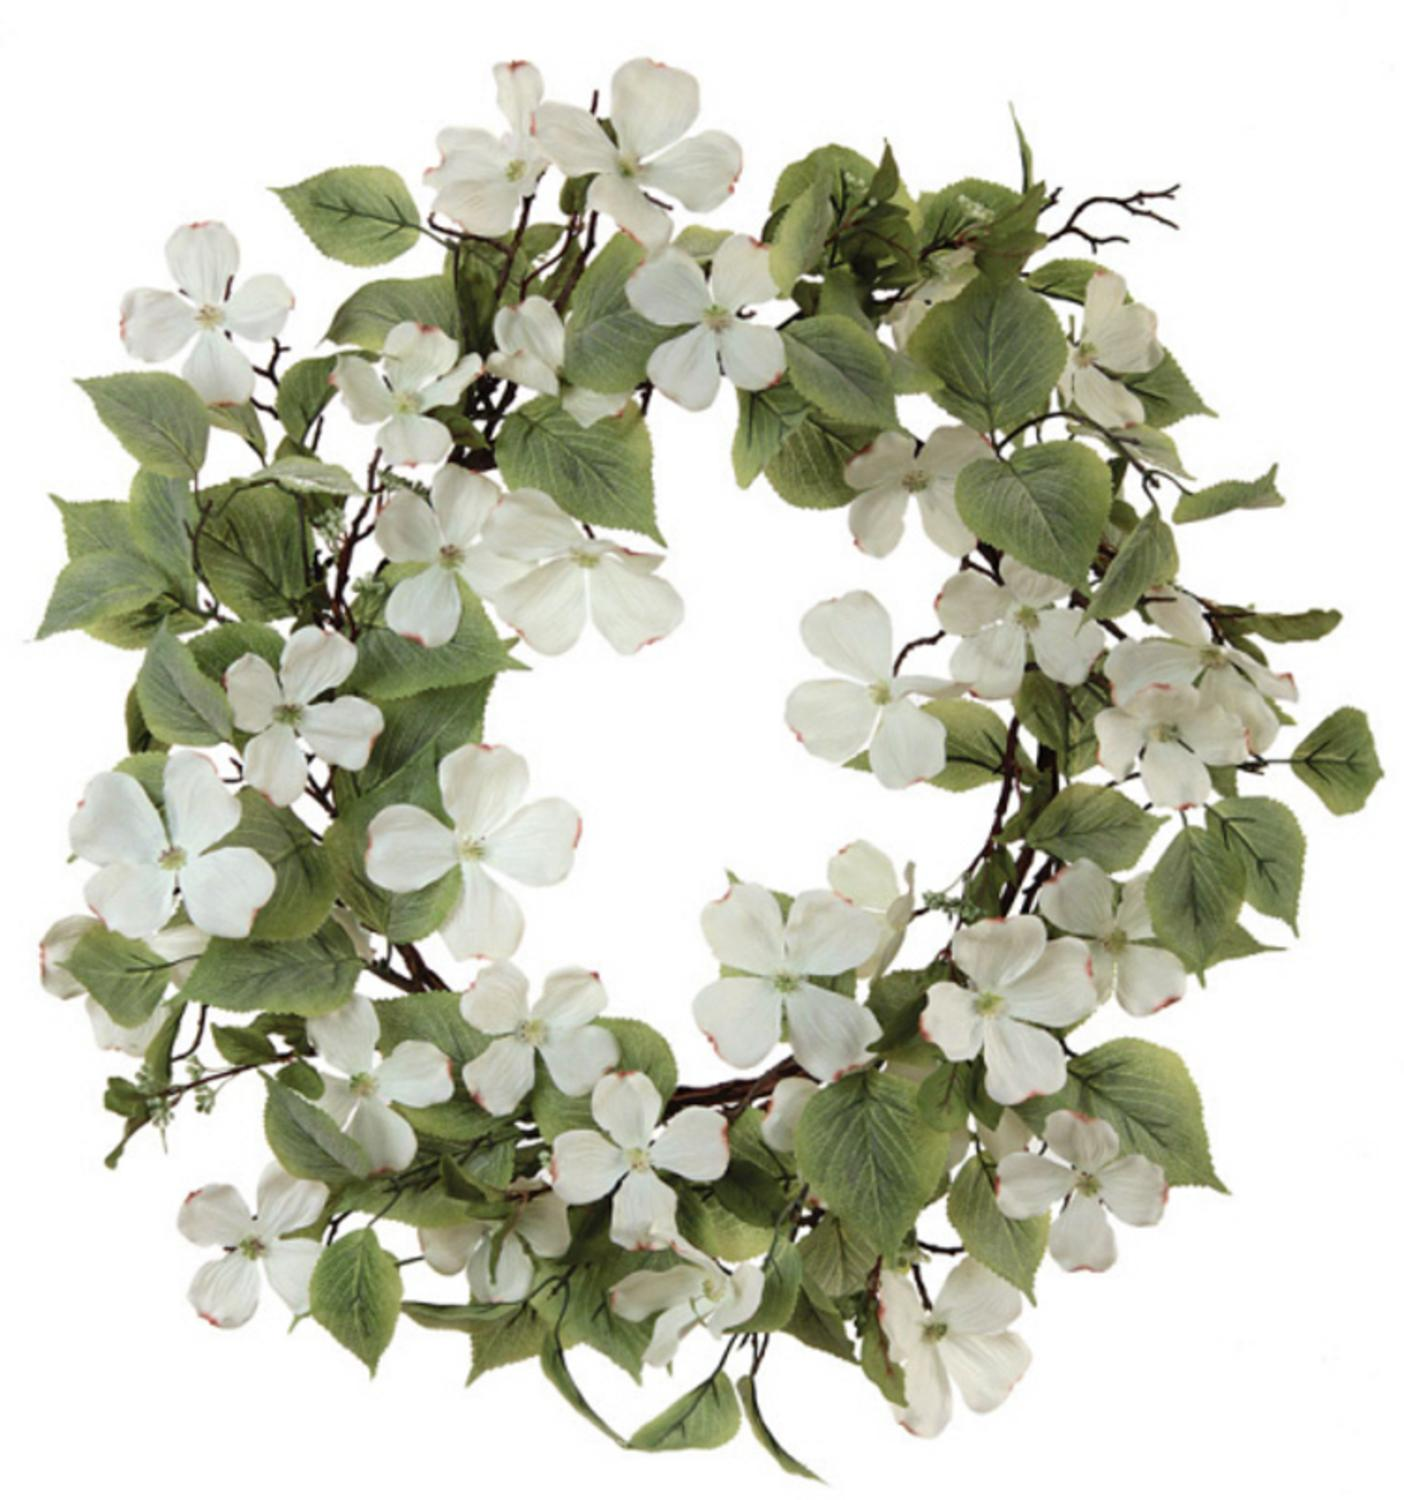 Pack of 2 Artificial White Cream Dogwood Flower and Green Leaf Wreaths 26""